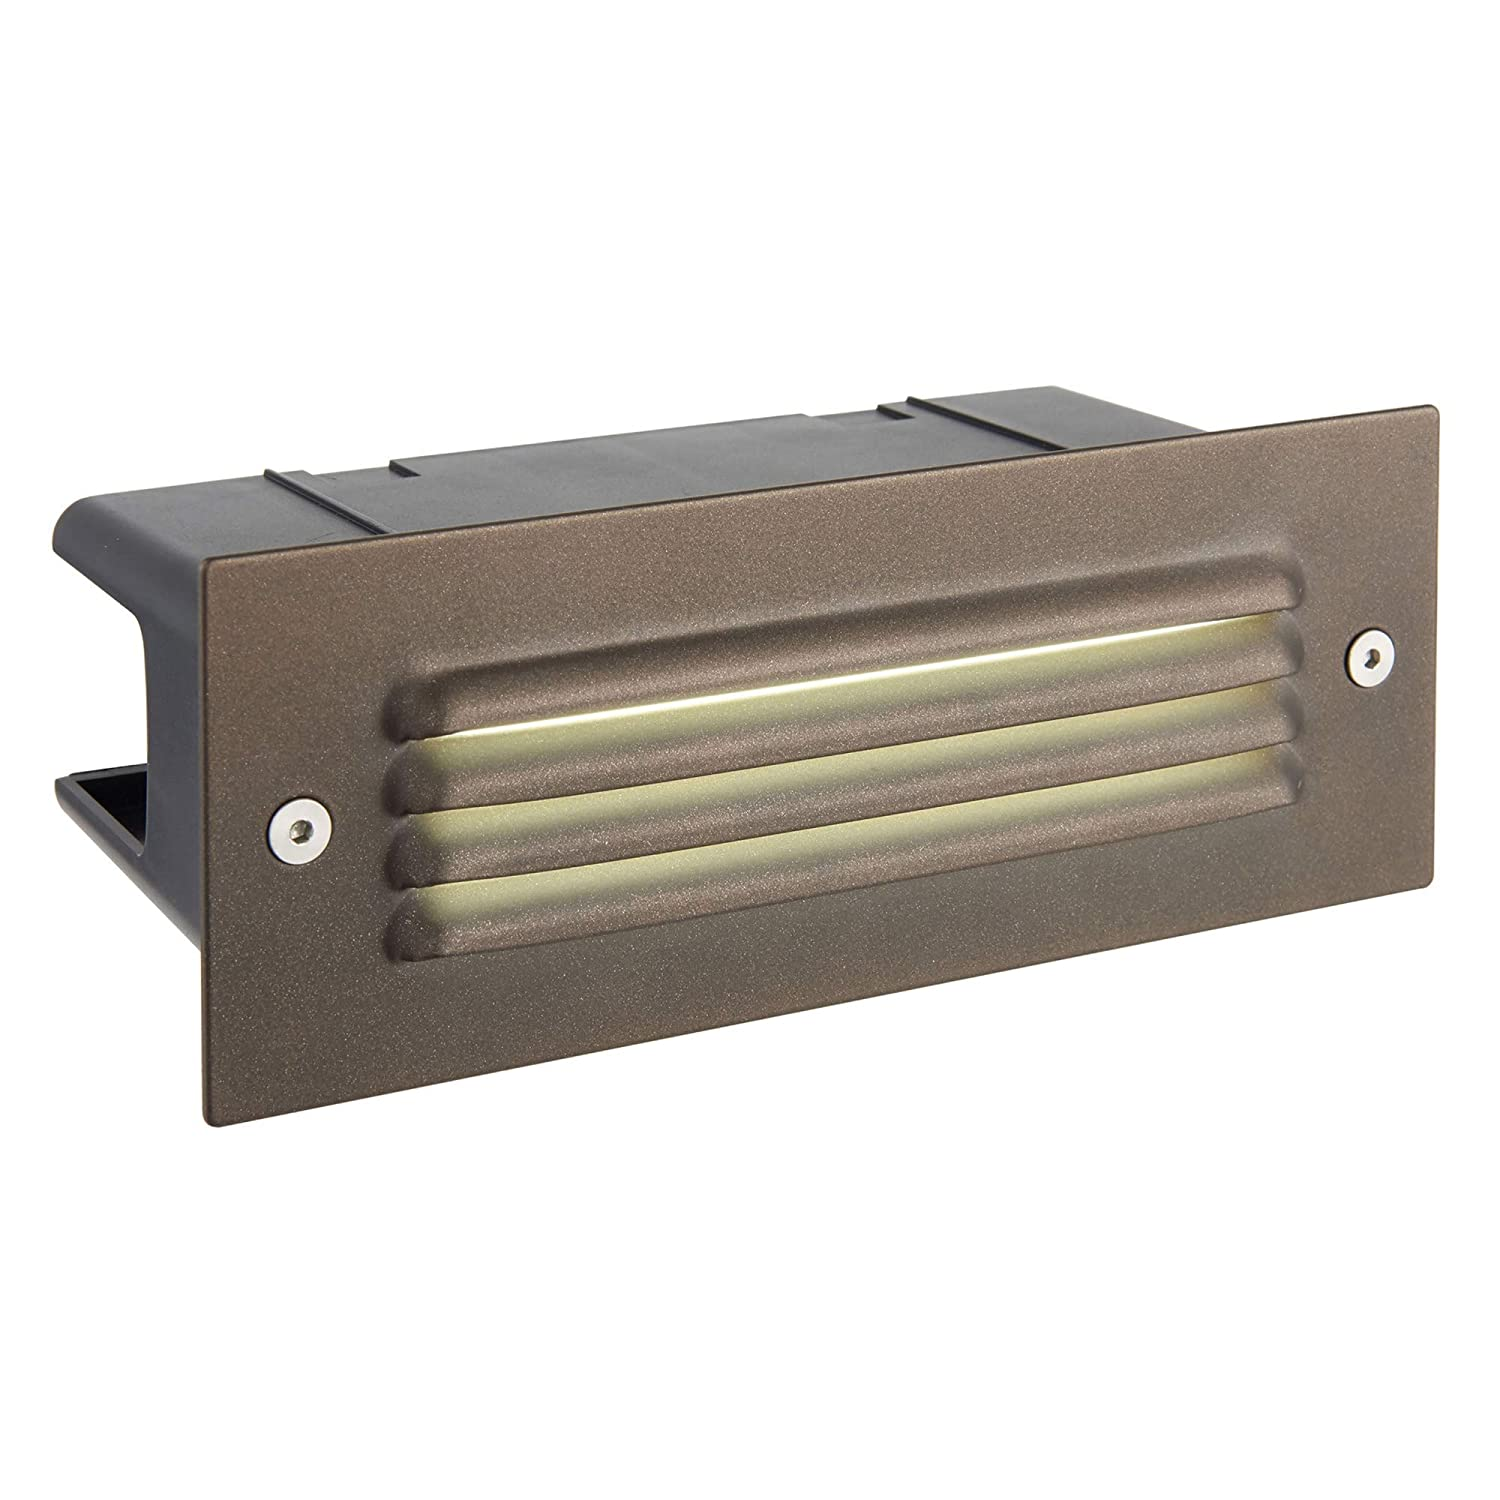 Zip-LED Step Light Bronze Marine Grade Stainless Steel, 100V-240V Input Voltage, 3000K Warm White, Wet Location IP44, for use Outdoor on Landscape, Deck, Recessed Wall, Walkways